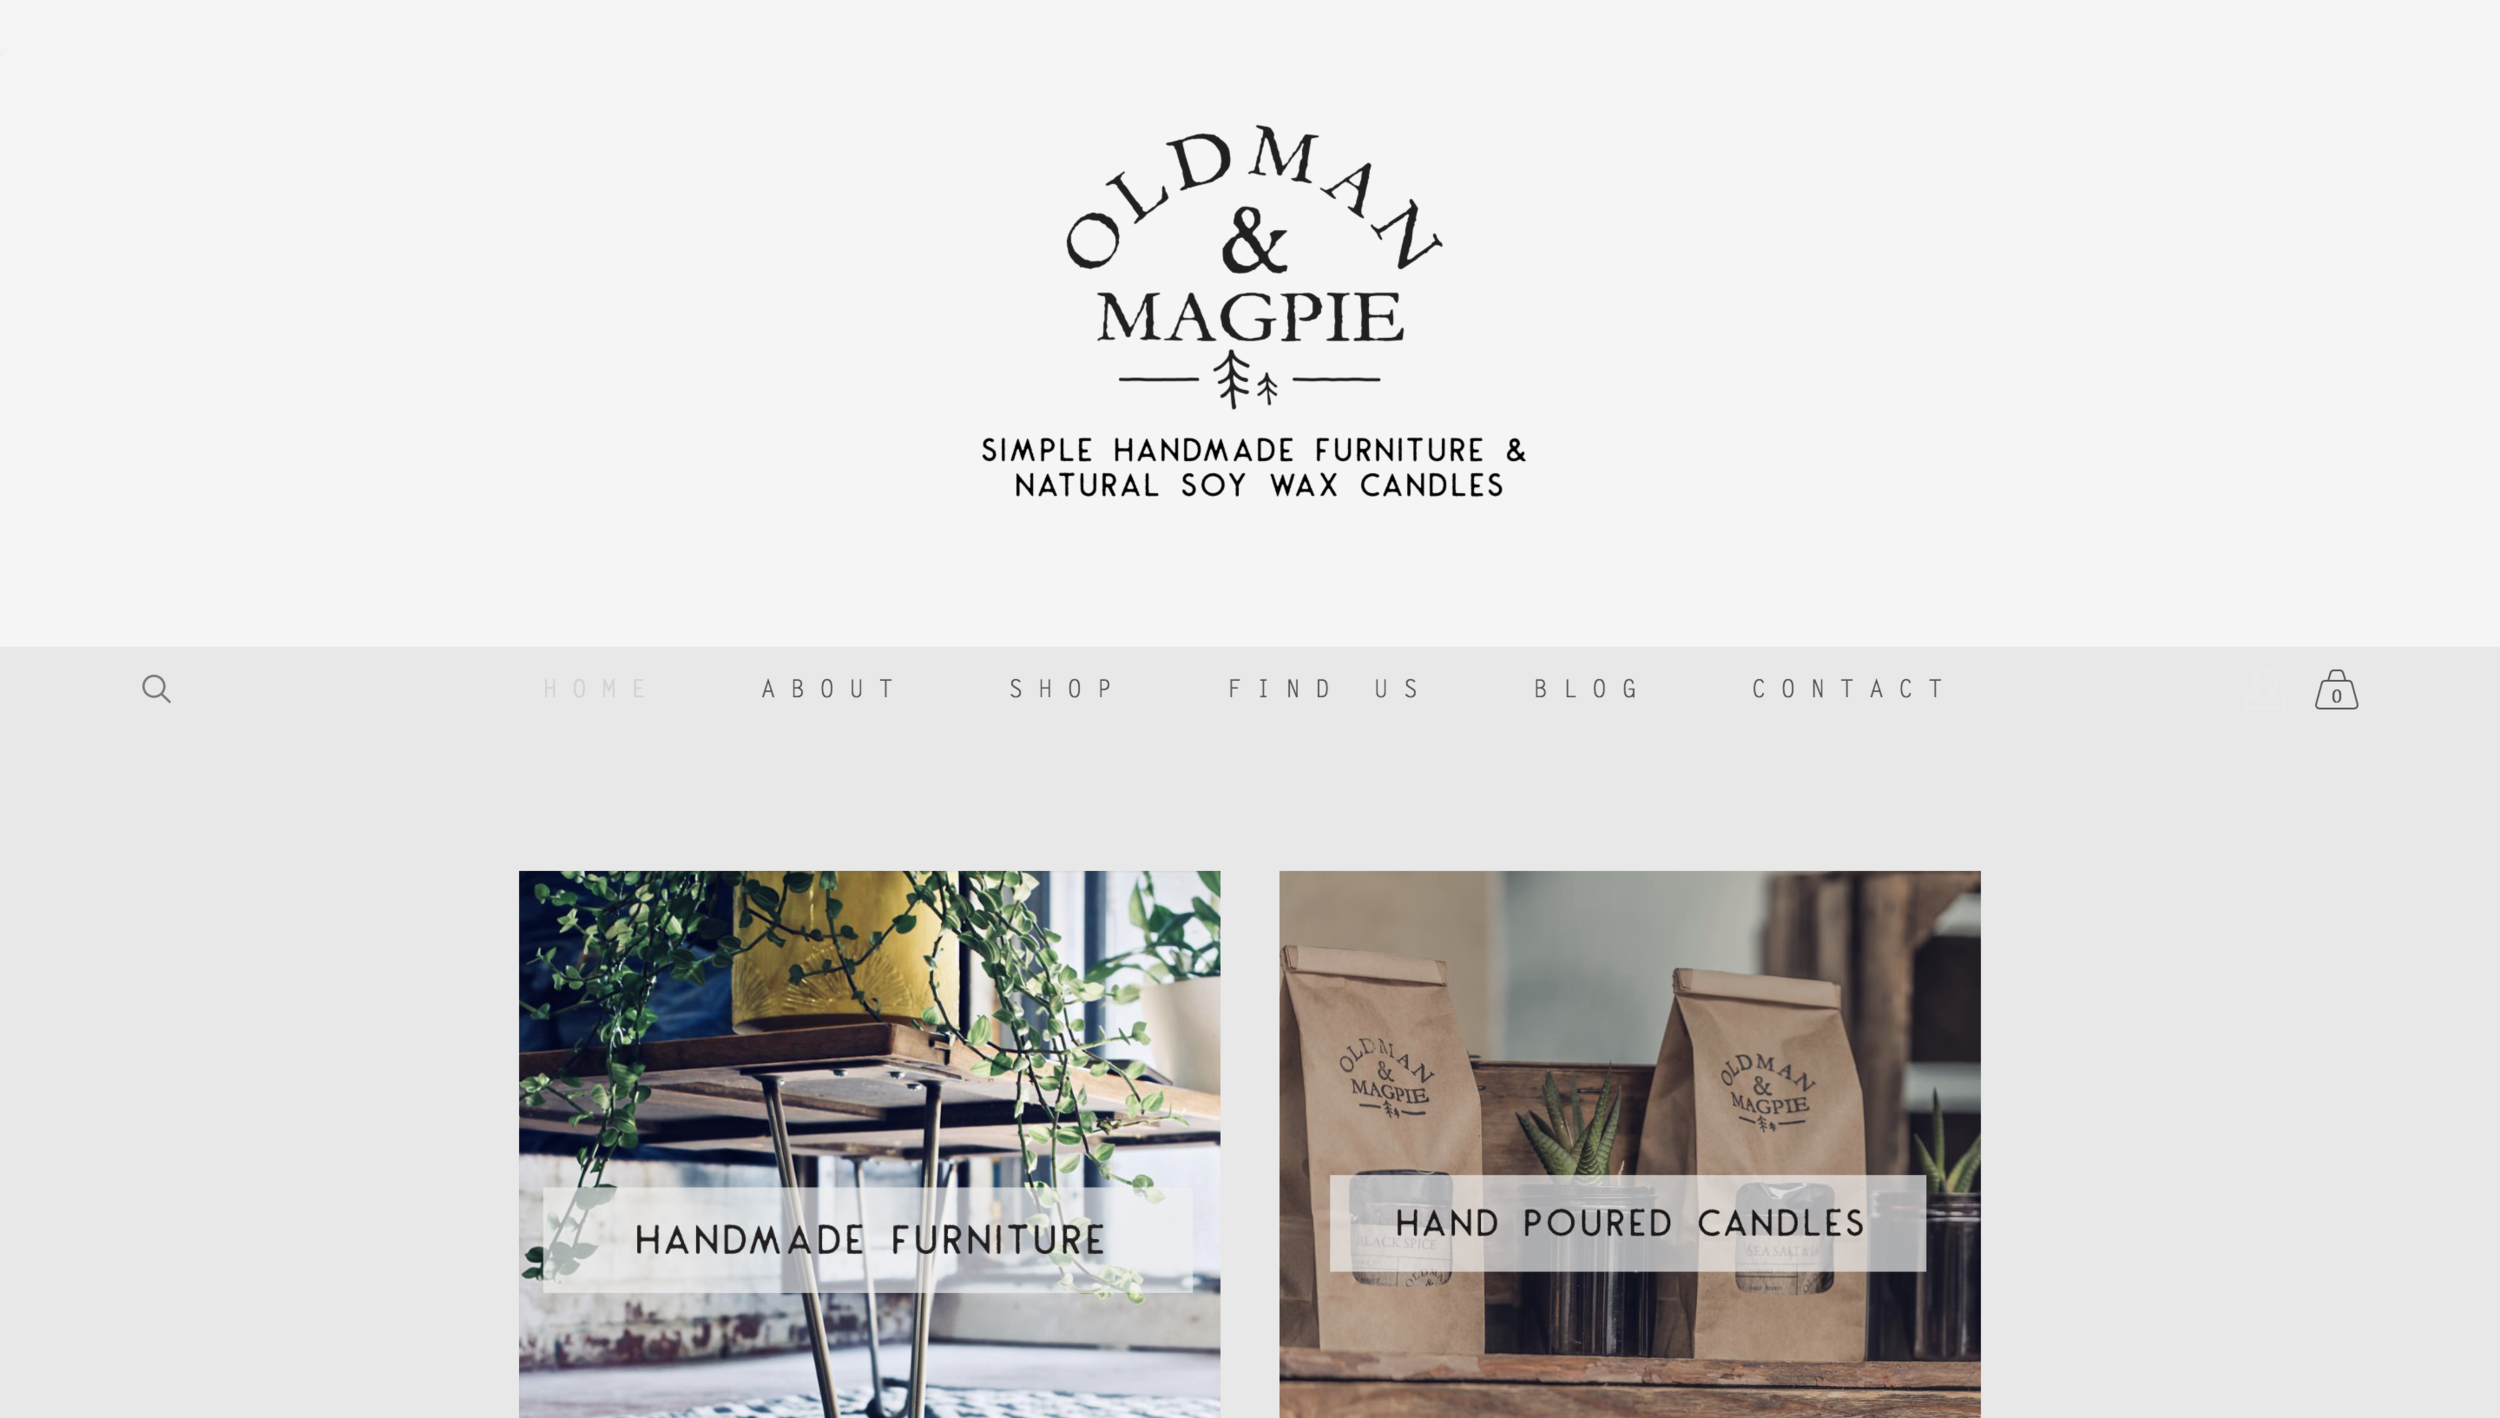 old man and magpie website